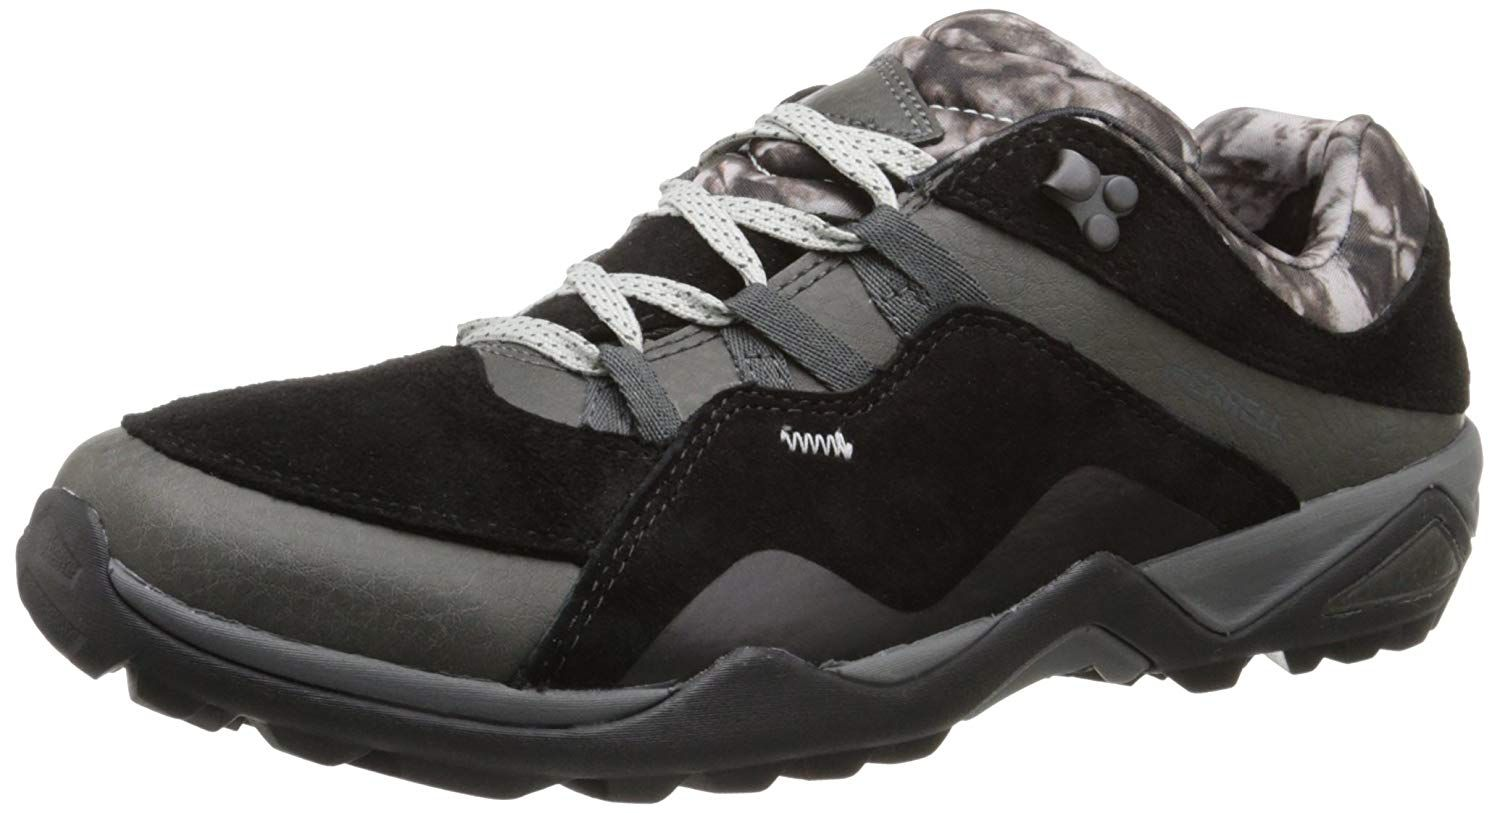 Merrell Women S Fluorecein Hiking Shoe Many Thanks For Having Viewed Our Photo This Is Our Affiliate Link Hiking Shoes Women Hiking Women Hiking Boots